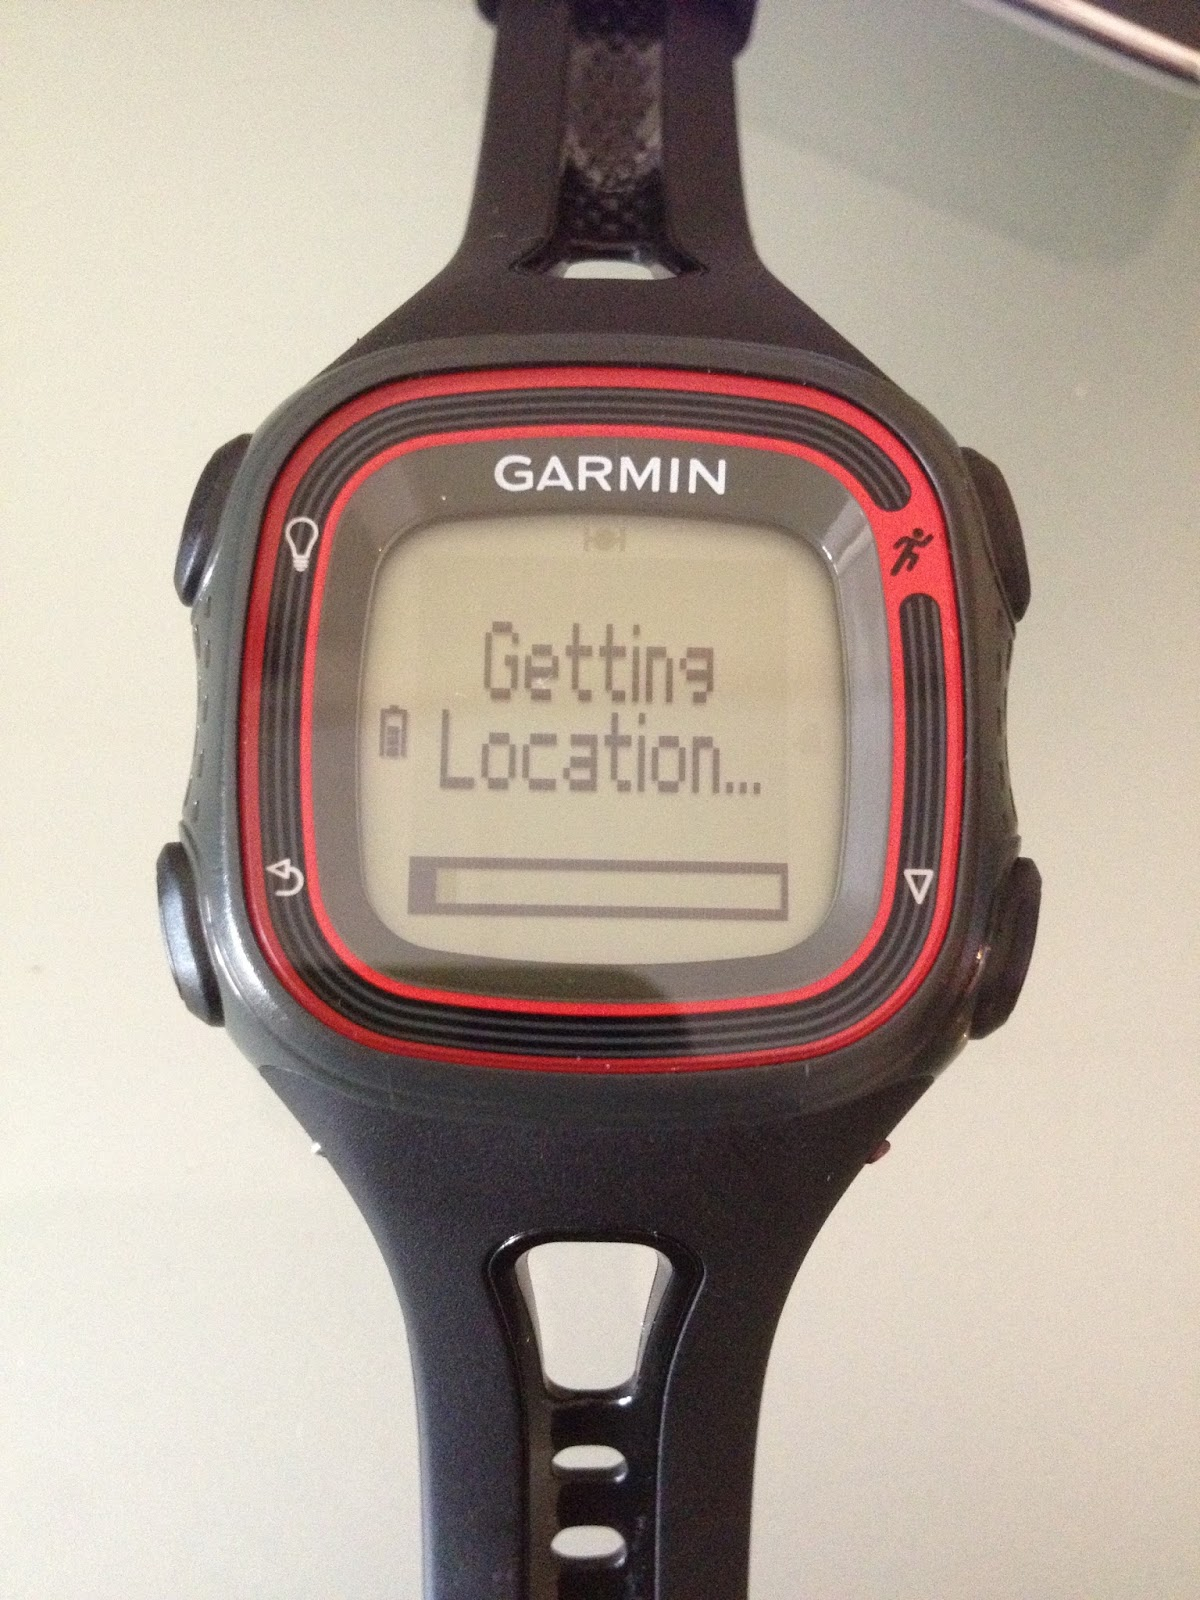 thor 39 s running journey through life garmin forerunner 10. Black Bedroom Furniture Sets. Home Design Ideas